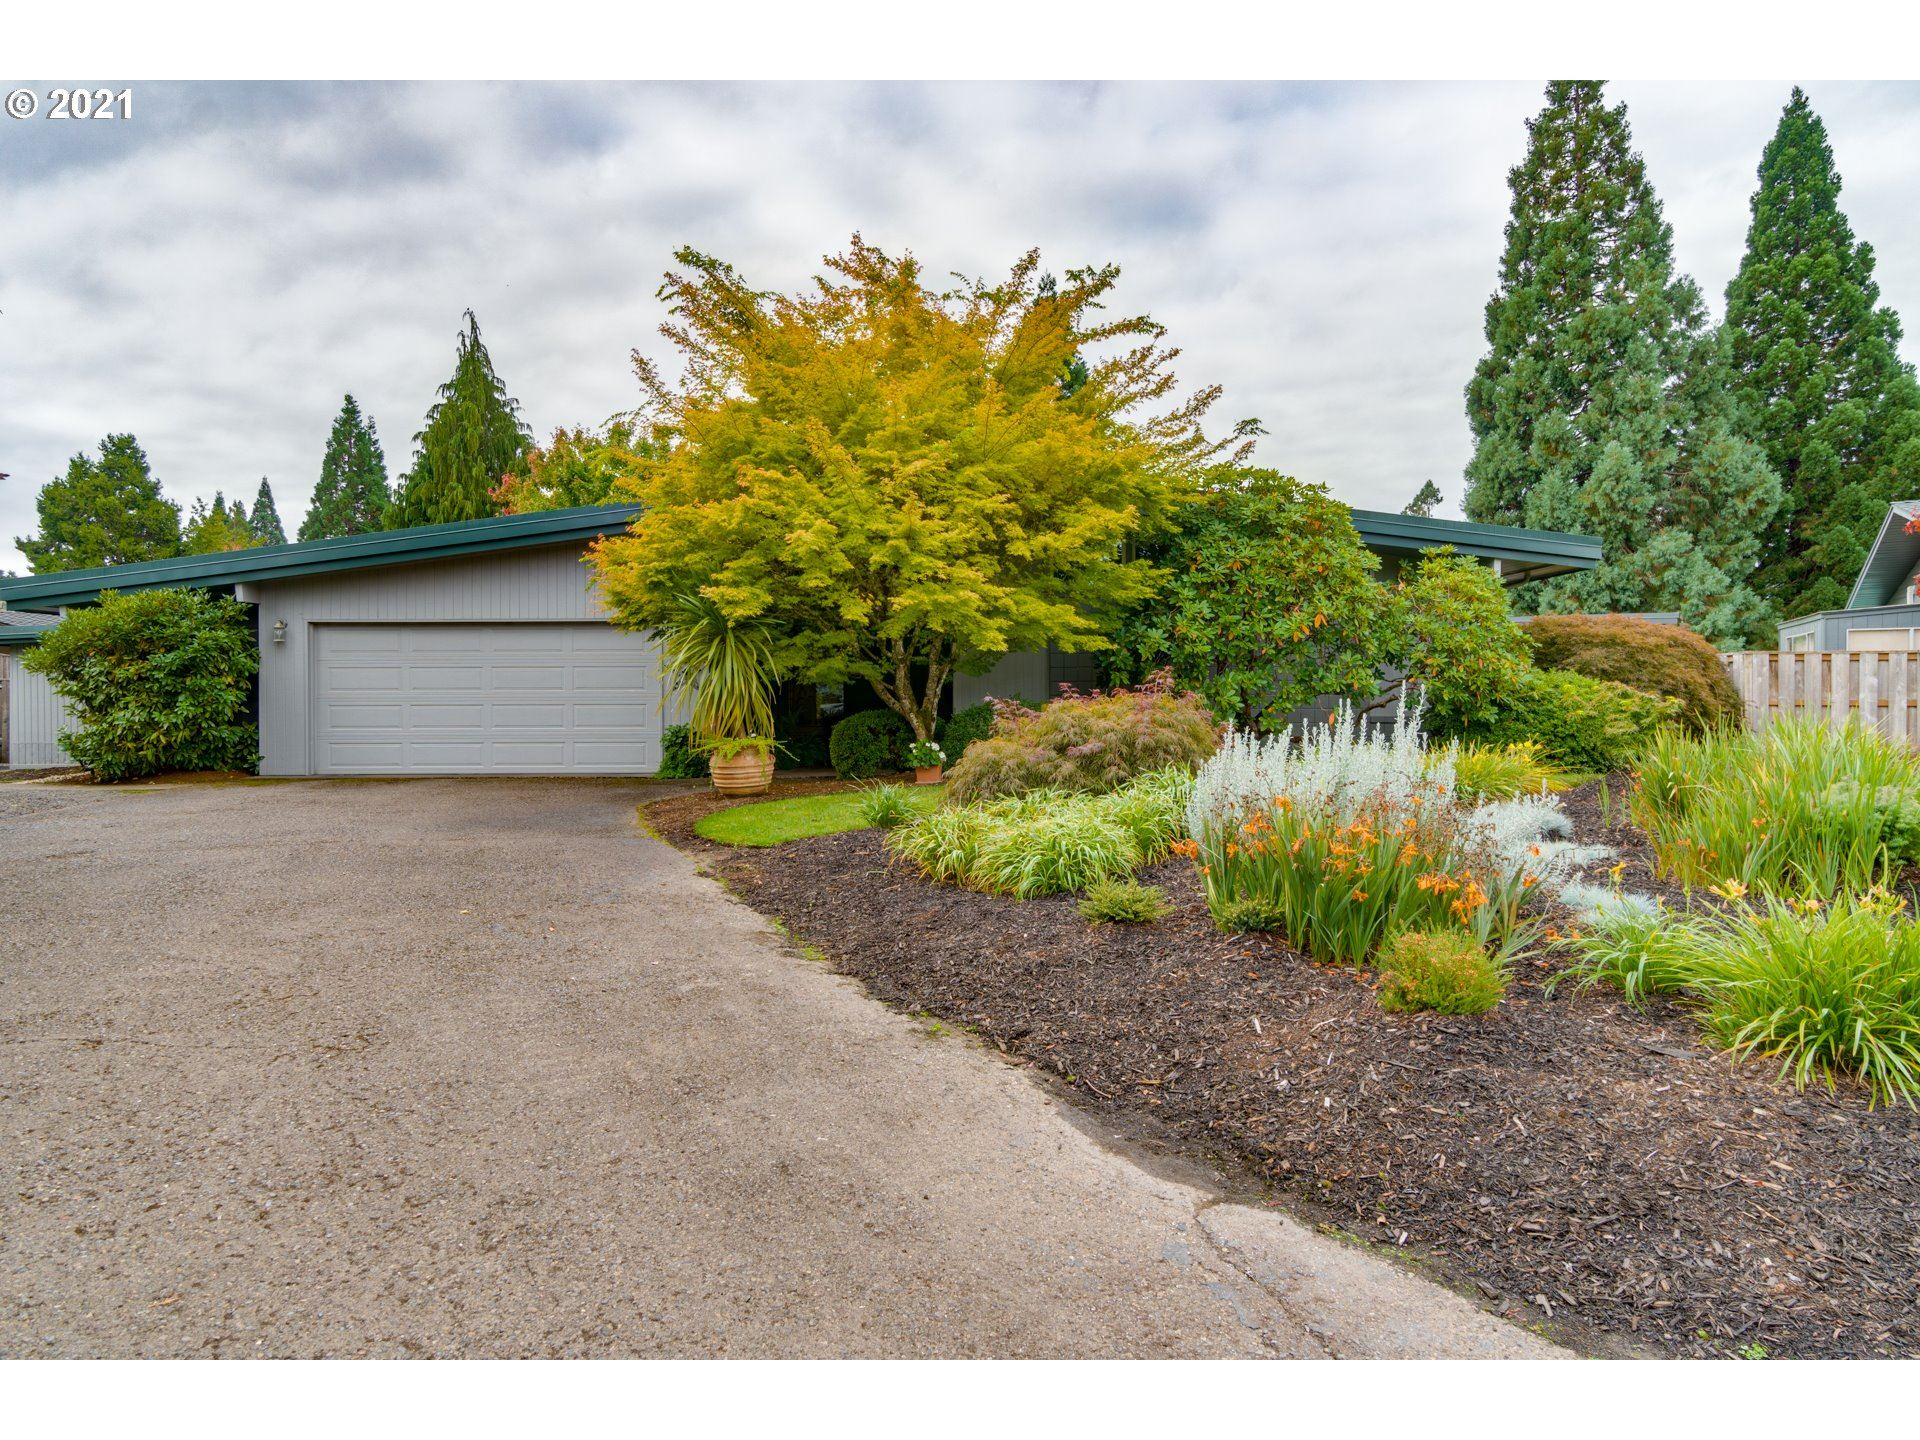 Photo of 1811 NW SAINT ANDREWS DR, McMinnville, OR 97128 (MLS # 21492068)